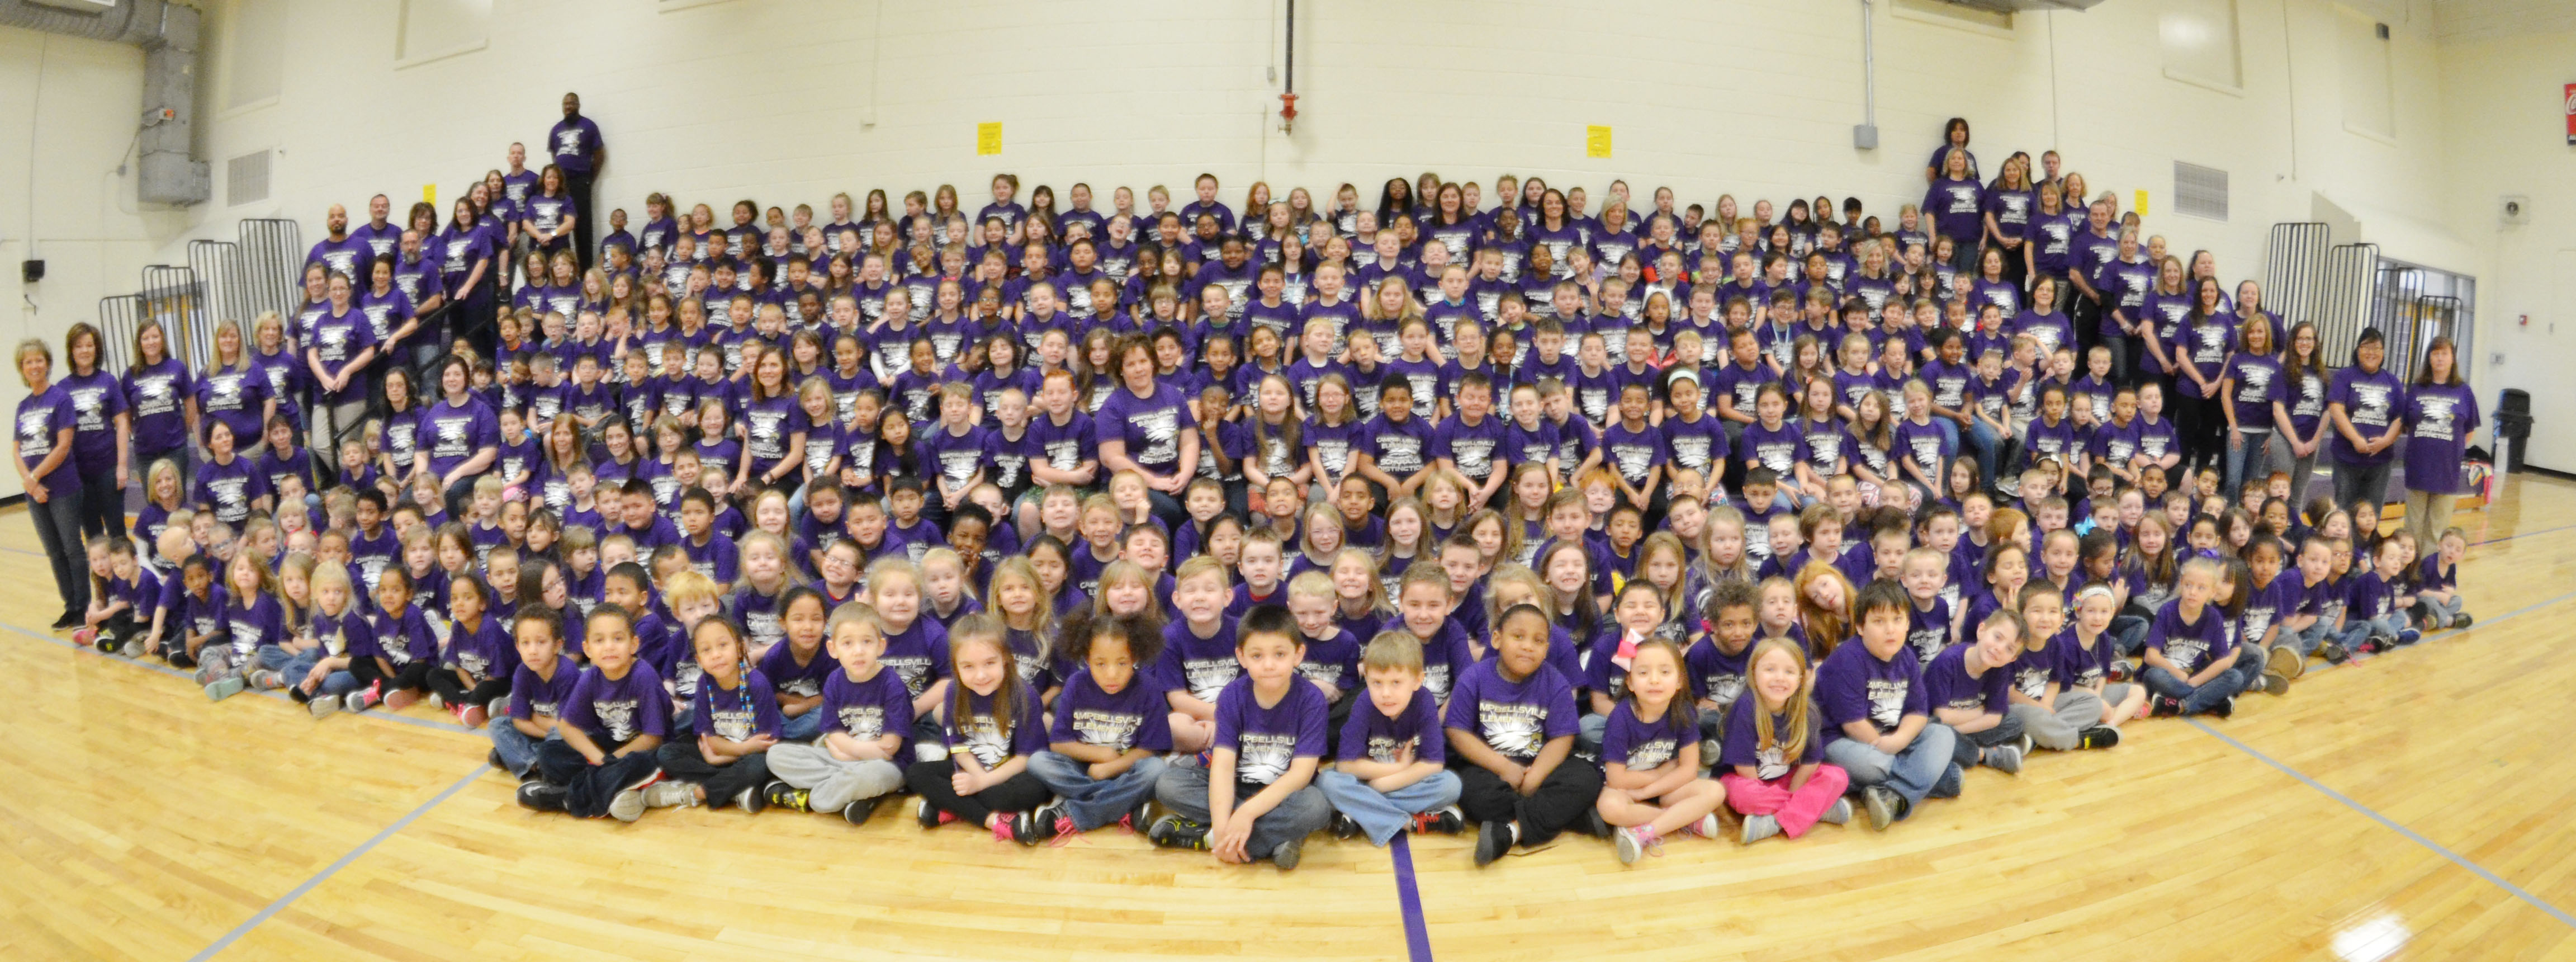 CES students, teachers, administrators and personnel wear their new School of Distinction t-shirts.